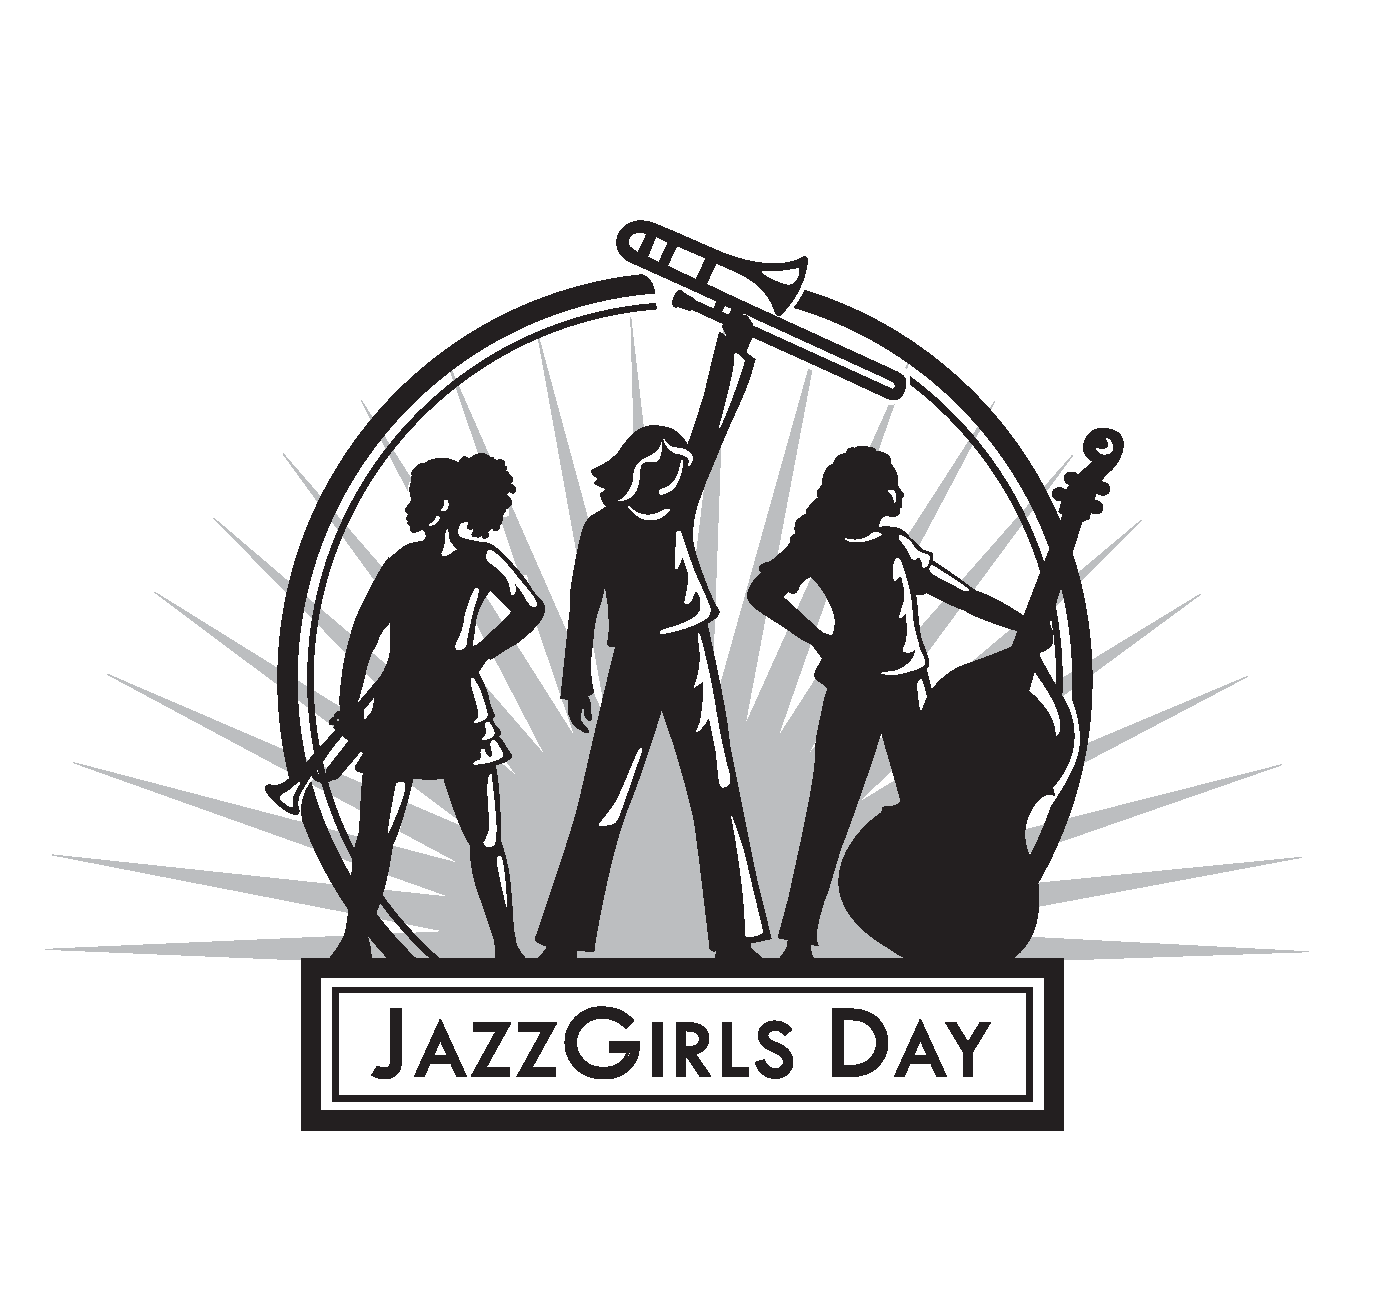 SFJAZZ Girls Day - Free workshop for female jazz musicians at SFJAZZ in San Francisco., Saturday, March 9th, 2019. Join celebrated women jazz faculty in this very special session for female jazz instrumentalists and singers ages 13-18. Ensemble techniques, improvisation, and musicianship will be the focus of this program for emerging jazz players.